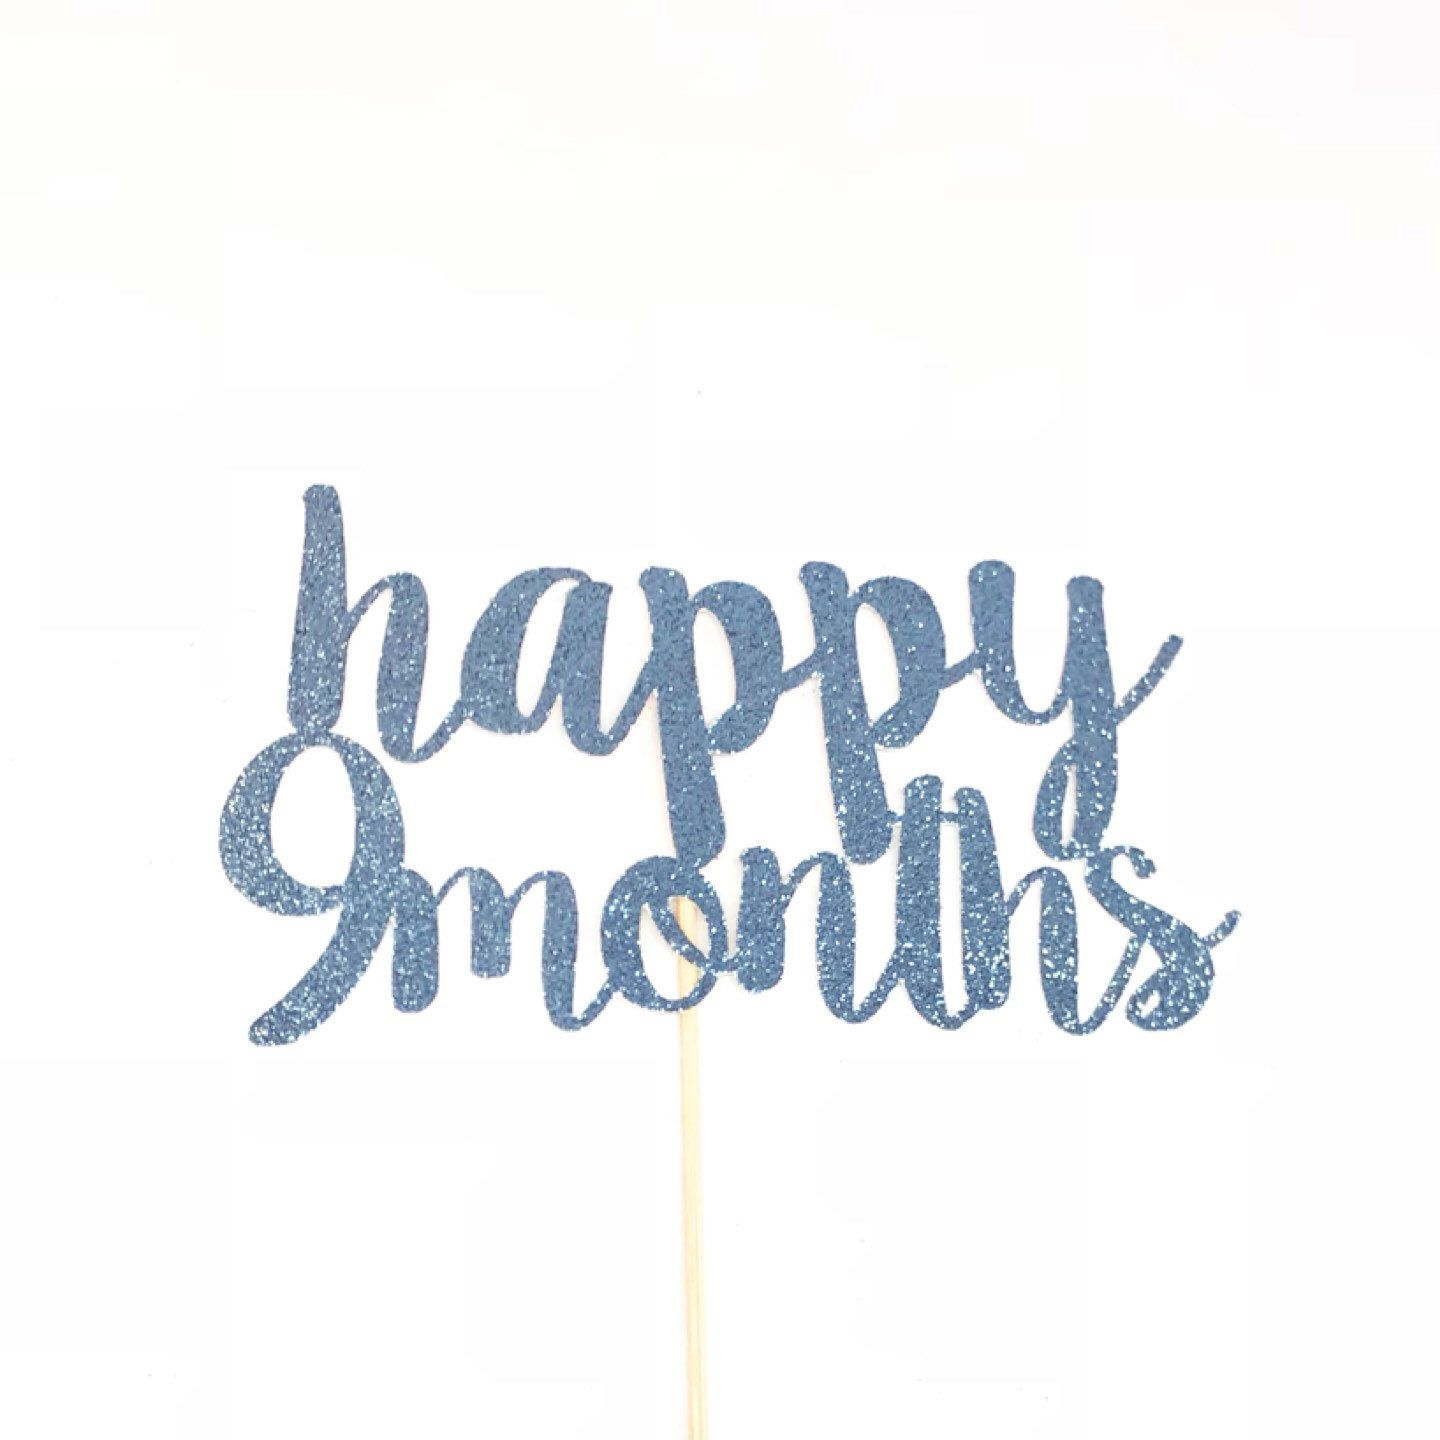 9 Months Anniversary Letter from i.pinimg.com